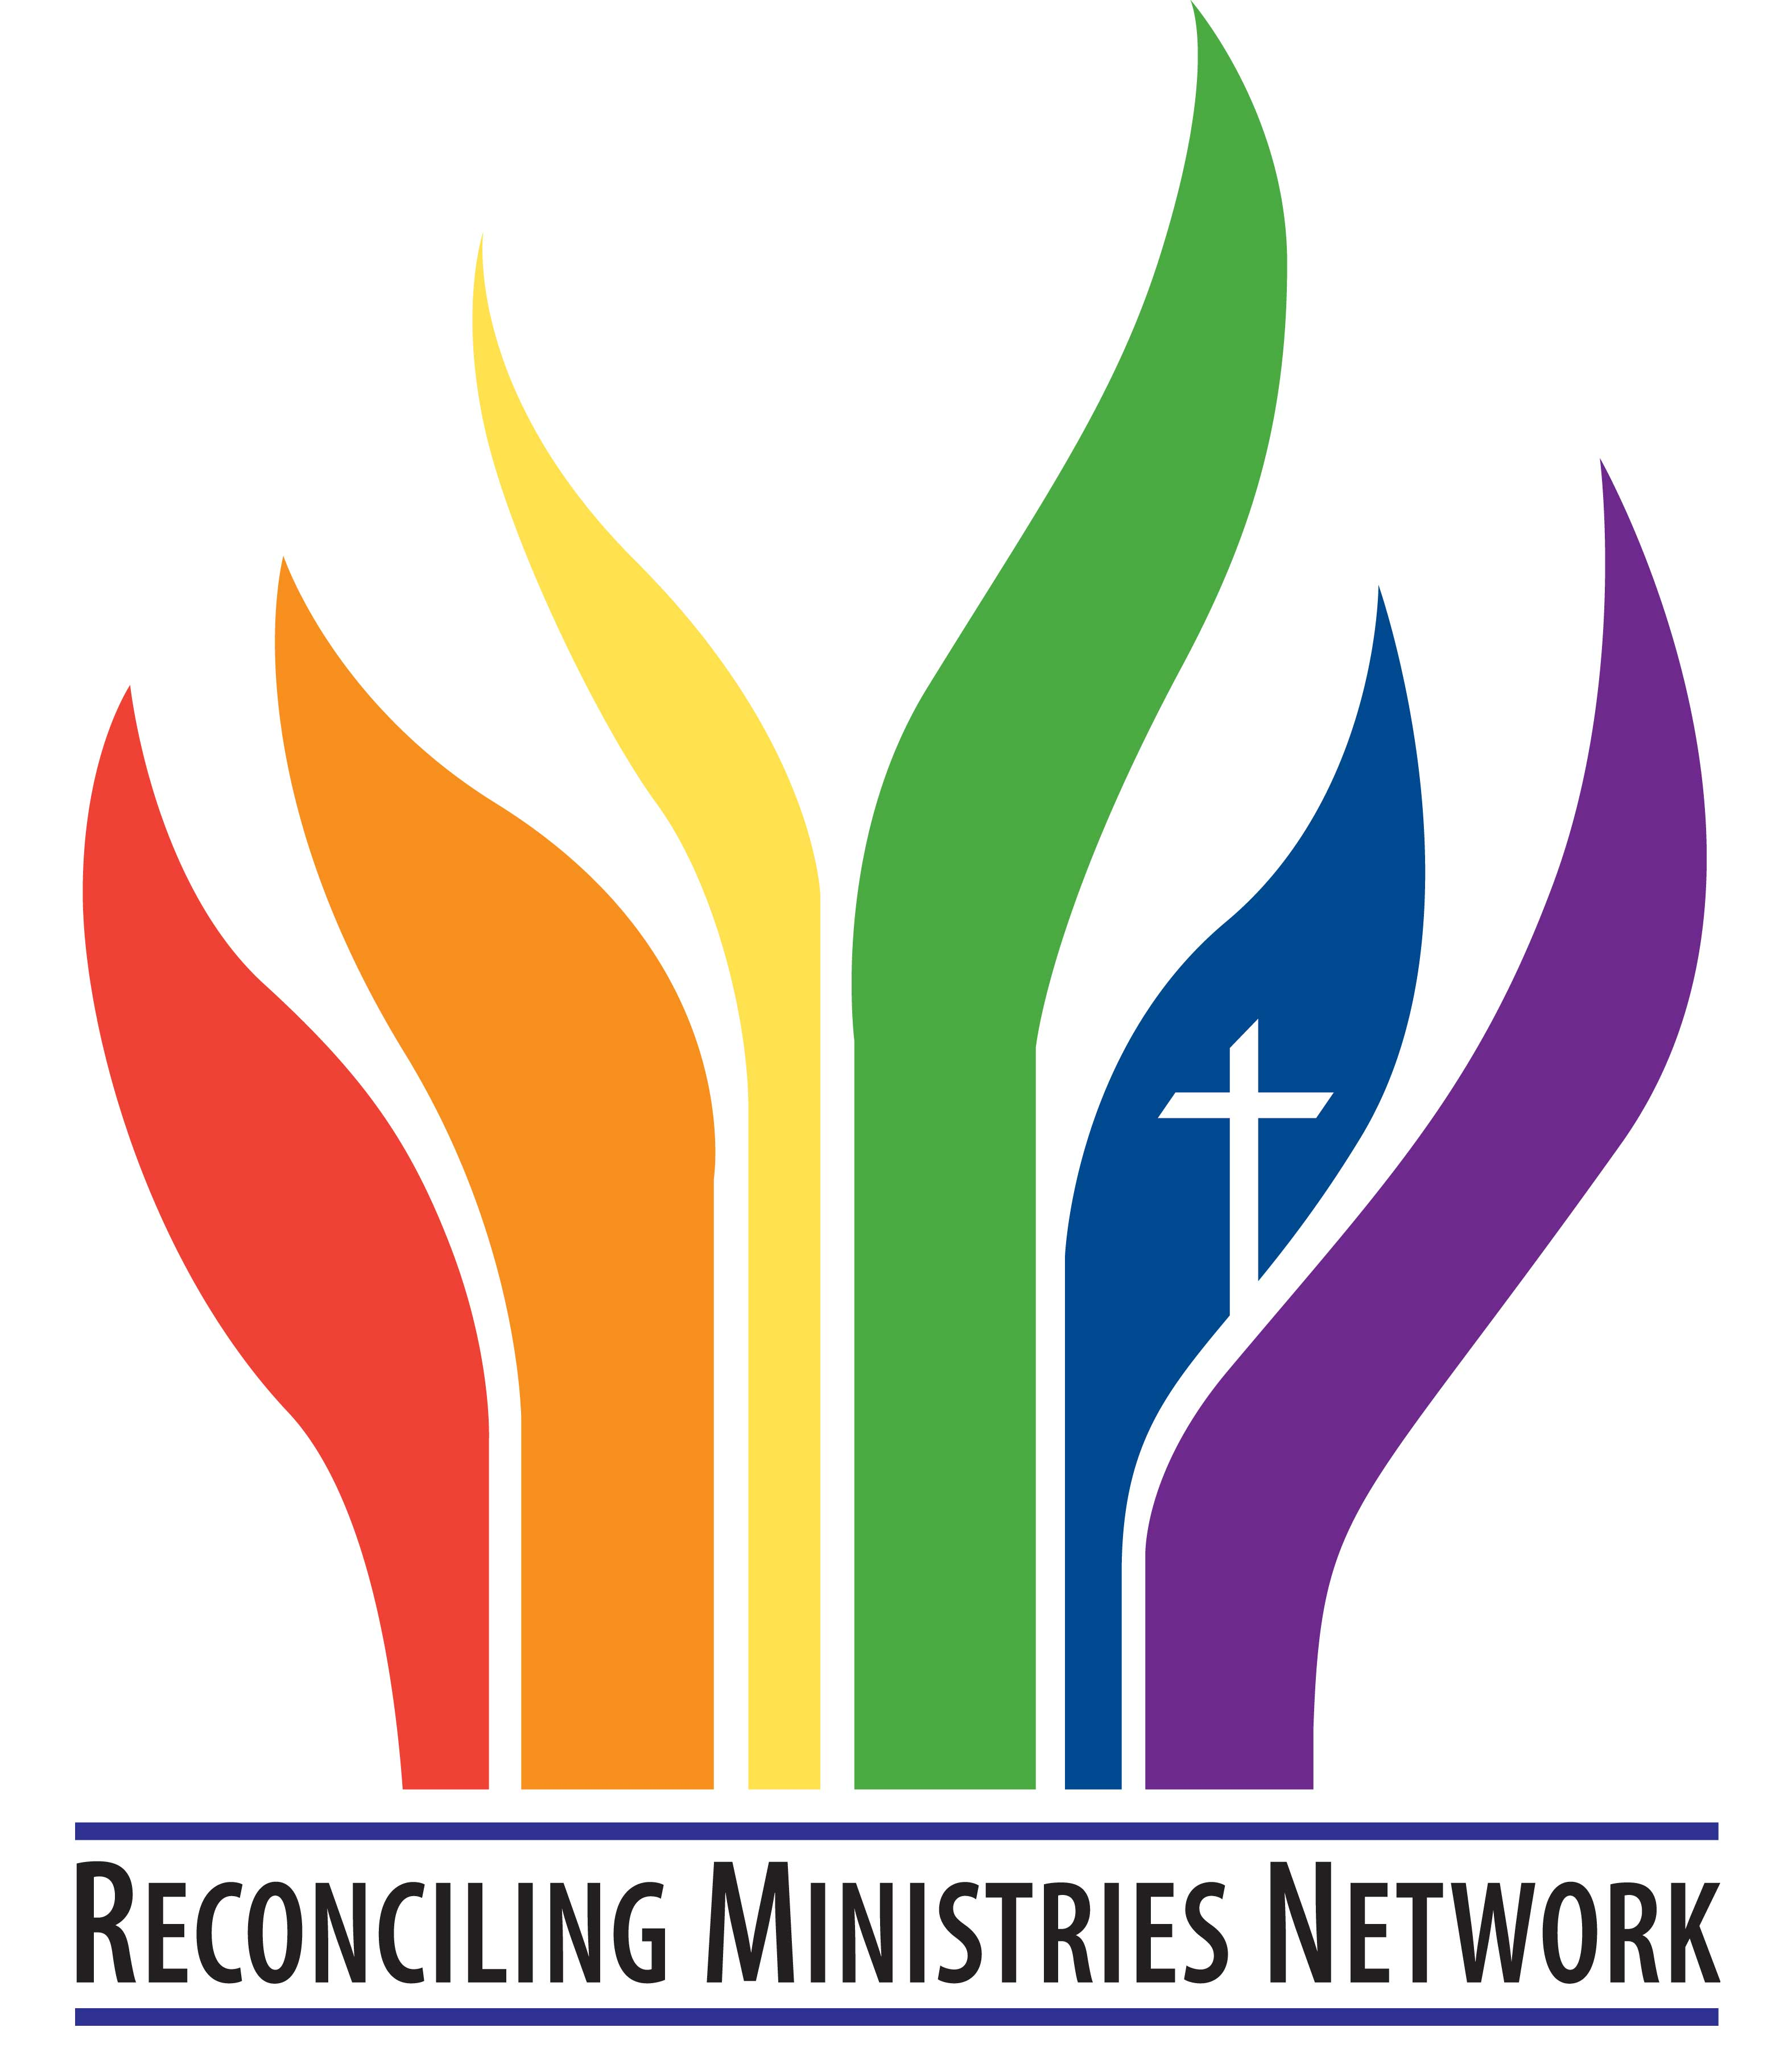 Reconciling-Ministries-Network-Logo